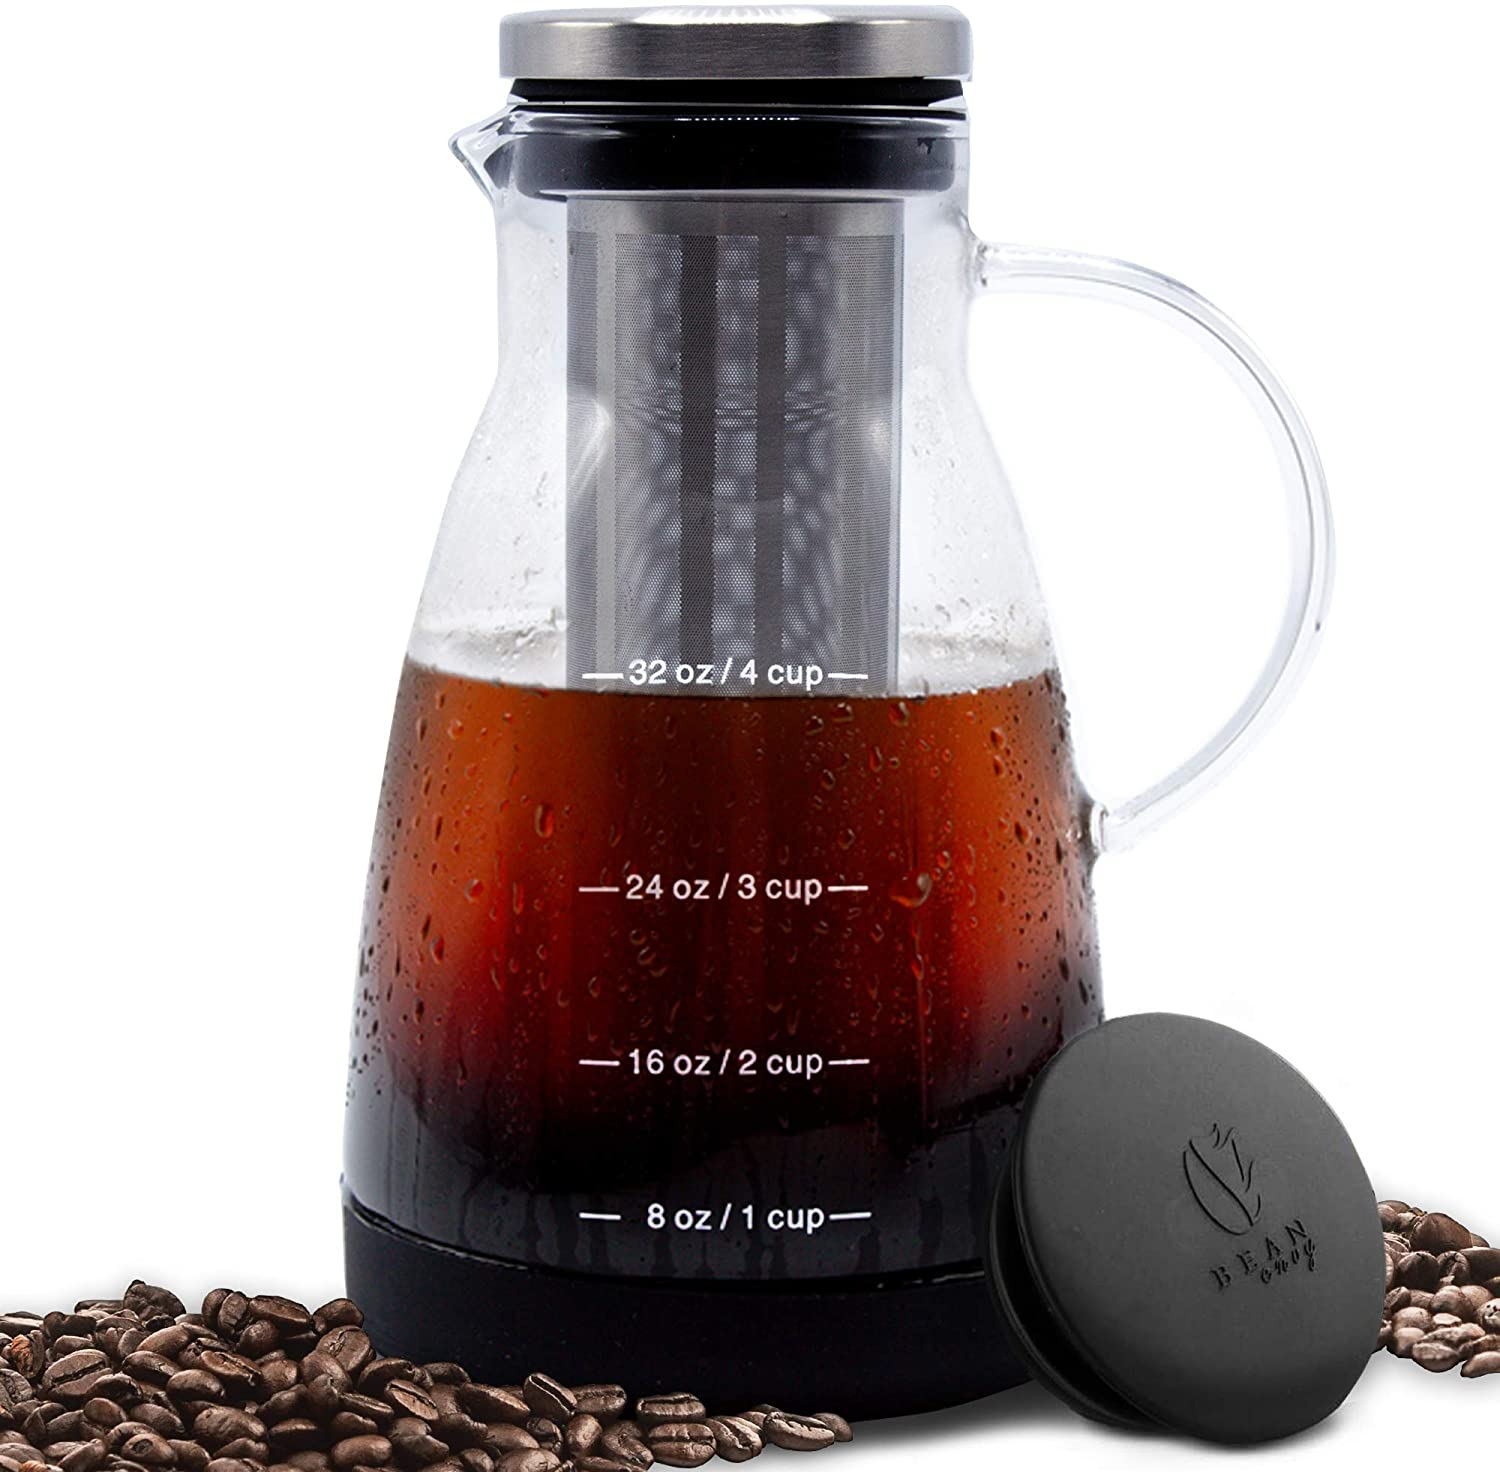 Bean Envy Cold Brew Coffee Maker - 32 oz - Premium Quality Glass - Perfect for Homemade Cold Brew and Iced Coffee - Includes Unique Non-Slip Silicone Base B071ZWR7M8